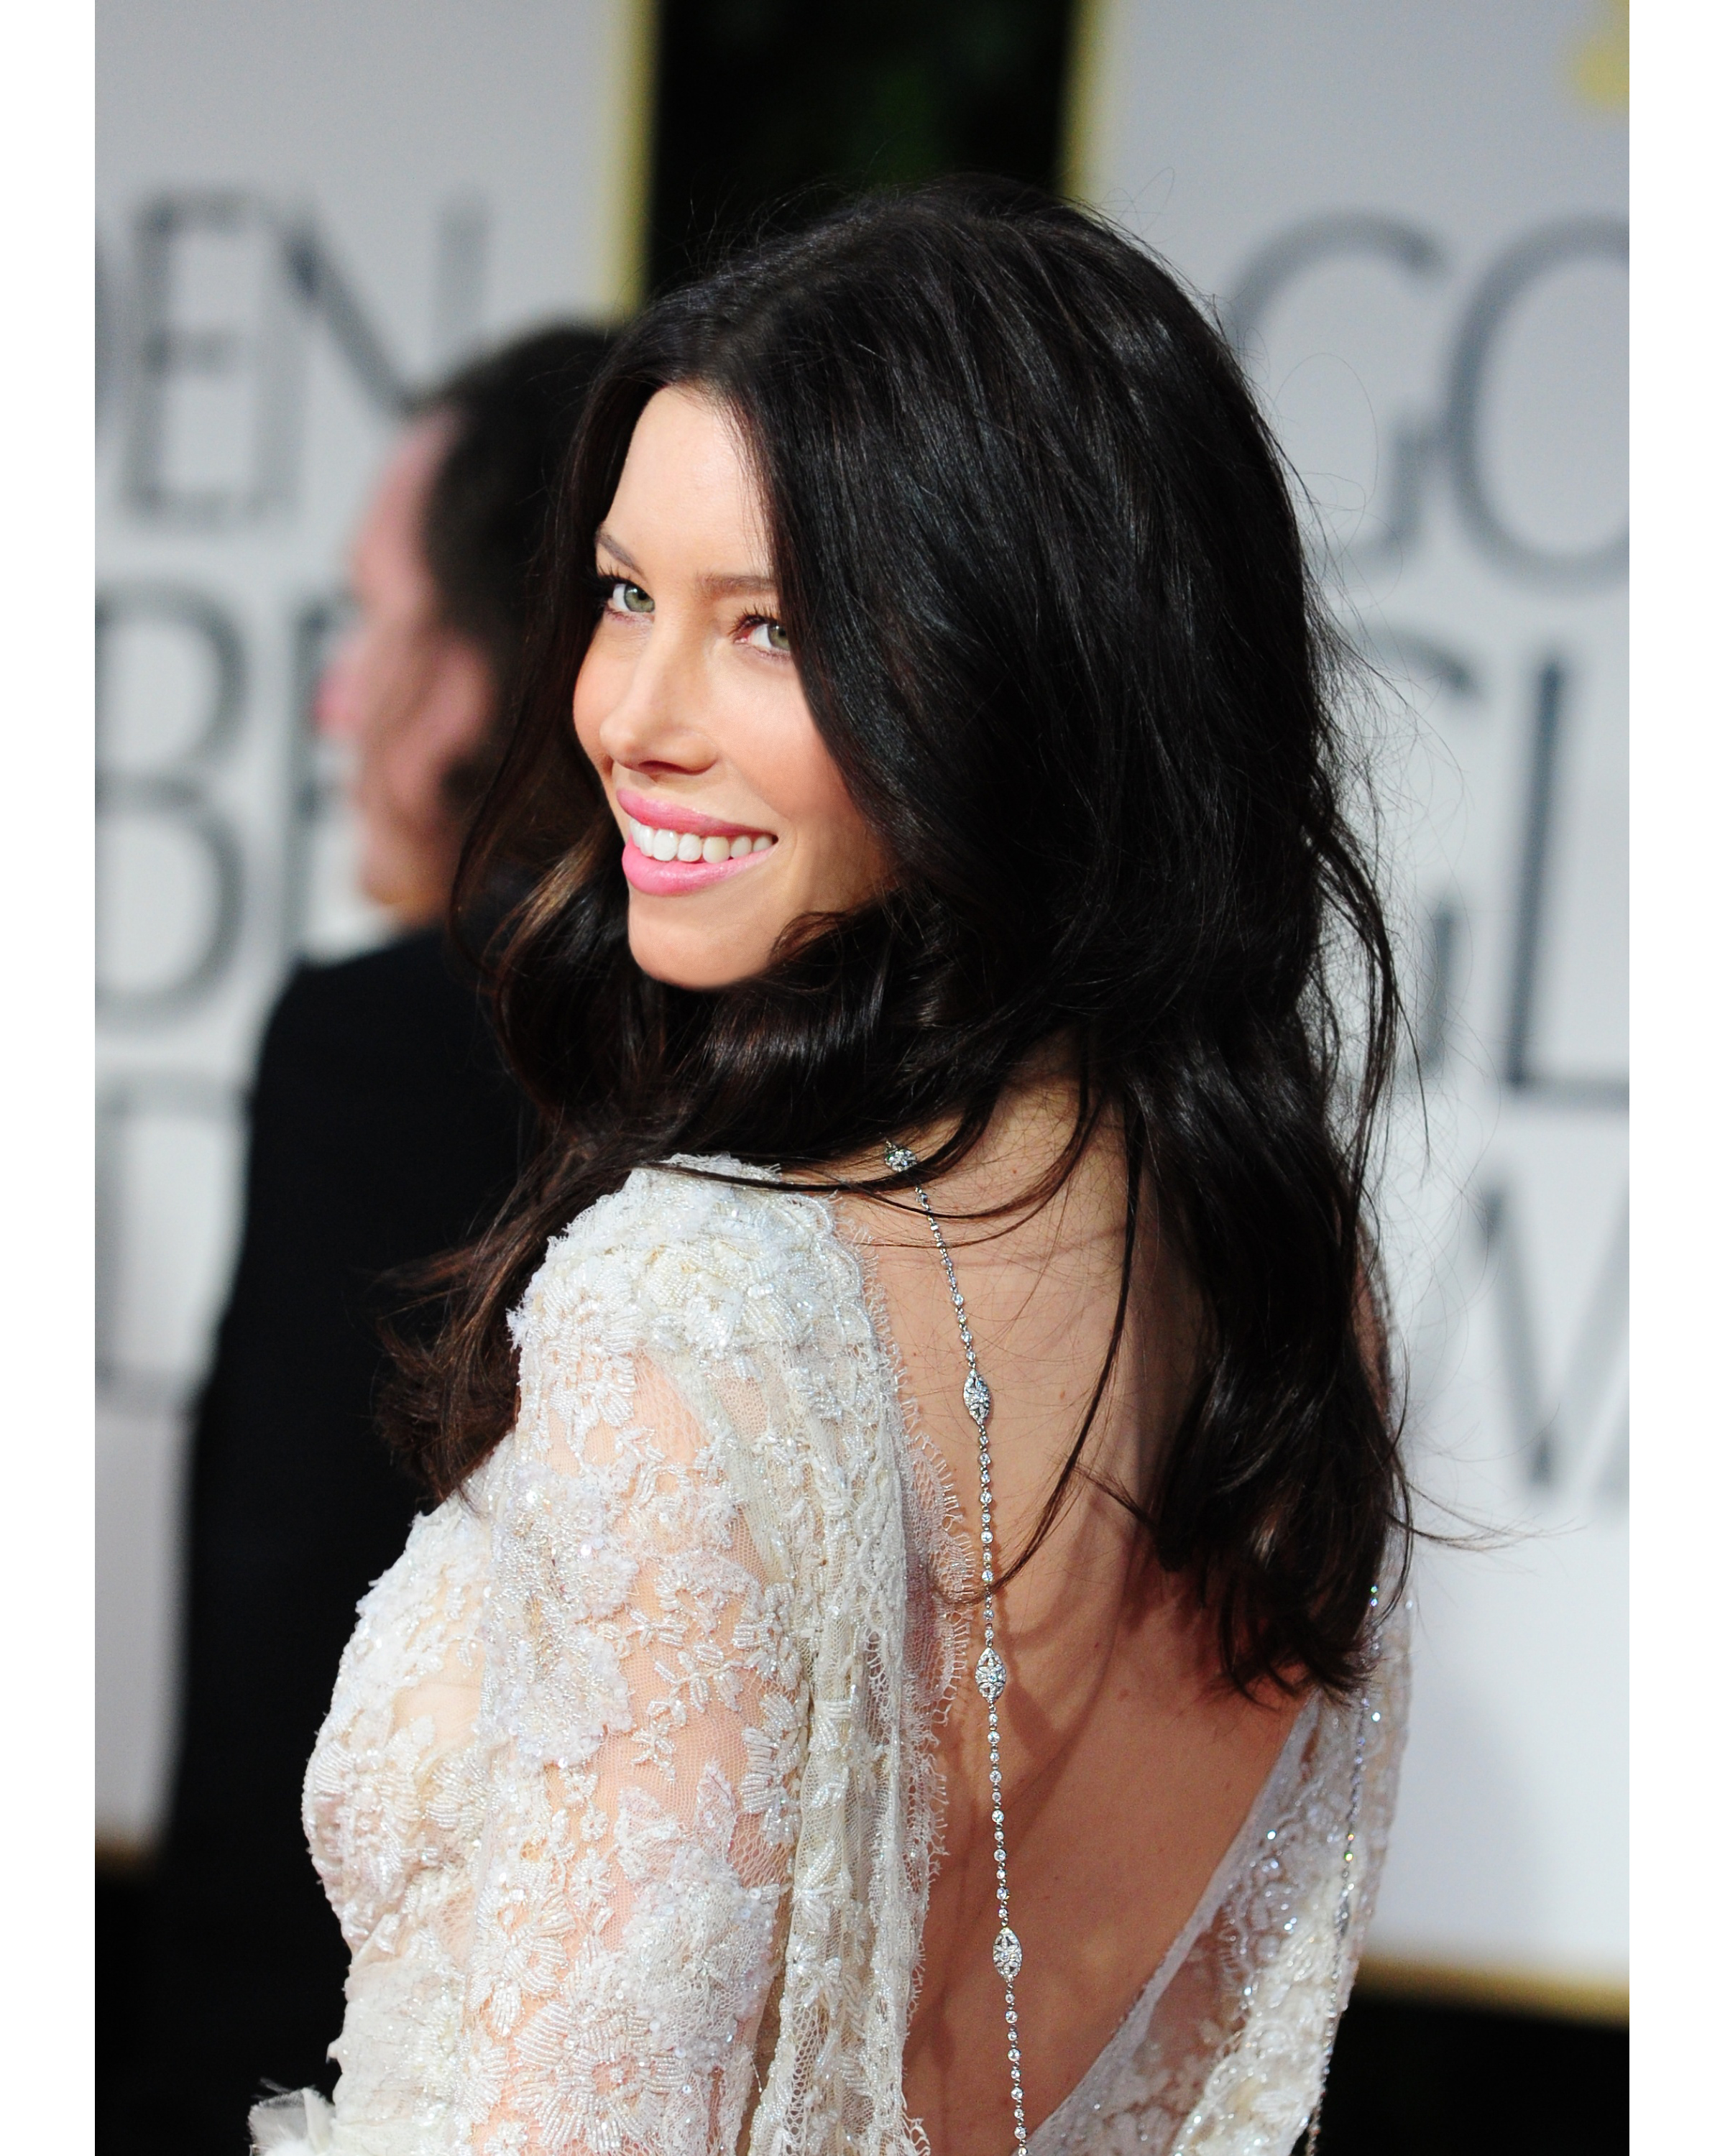 JESSICA BIEL AT THE 2012 GOLDEN GLOBE AWARDS